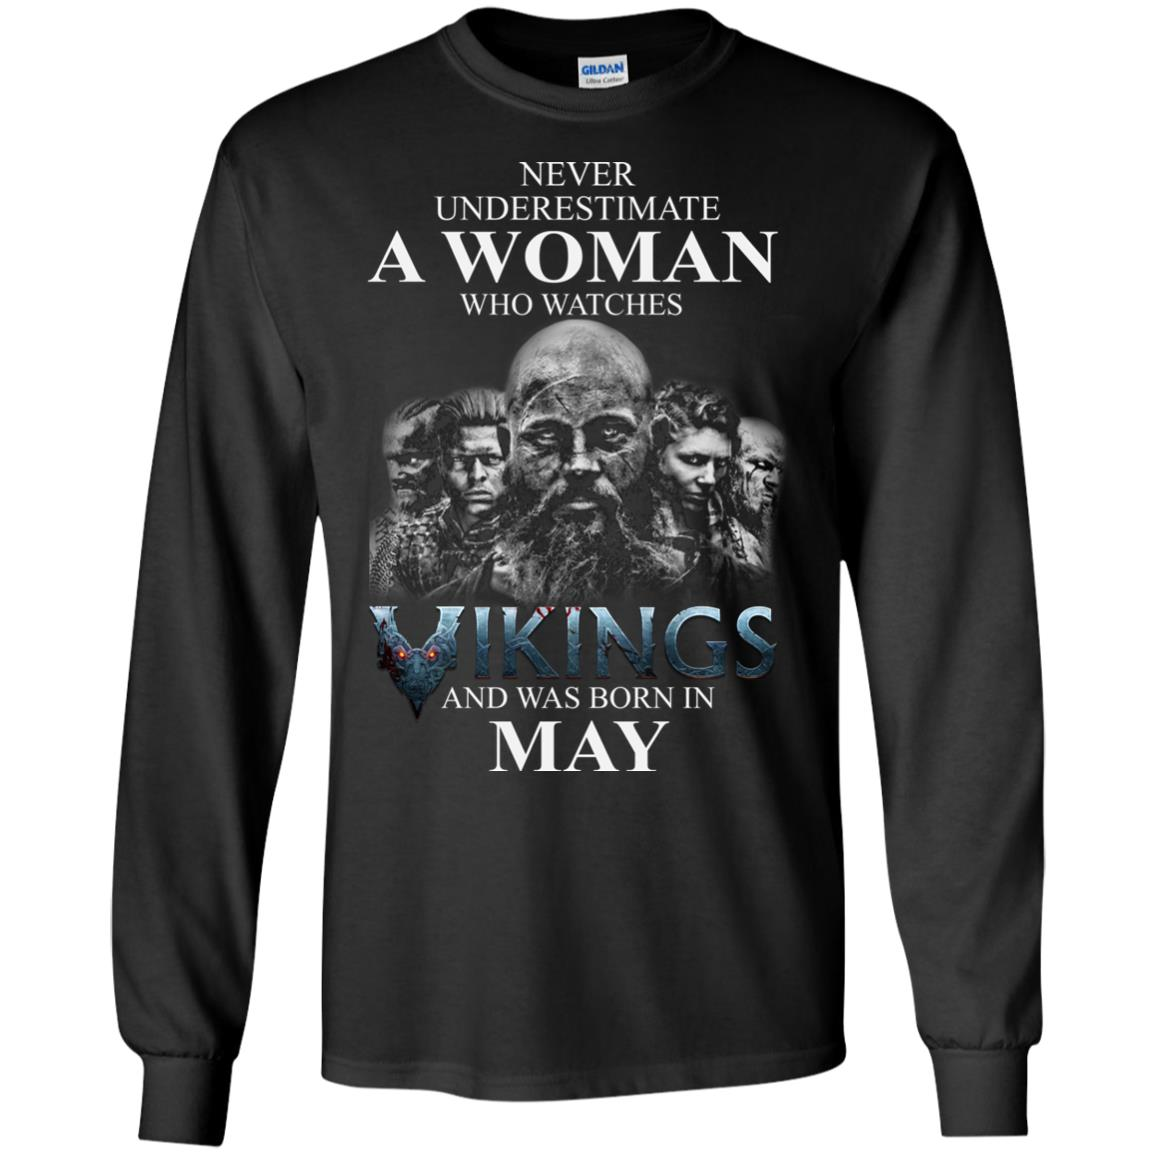 image 1305 - Never Underestimate A woman who watches Vikings and was born in May shirt